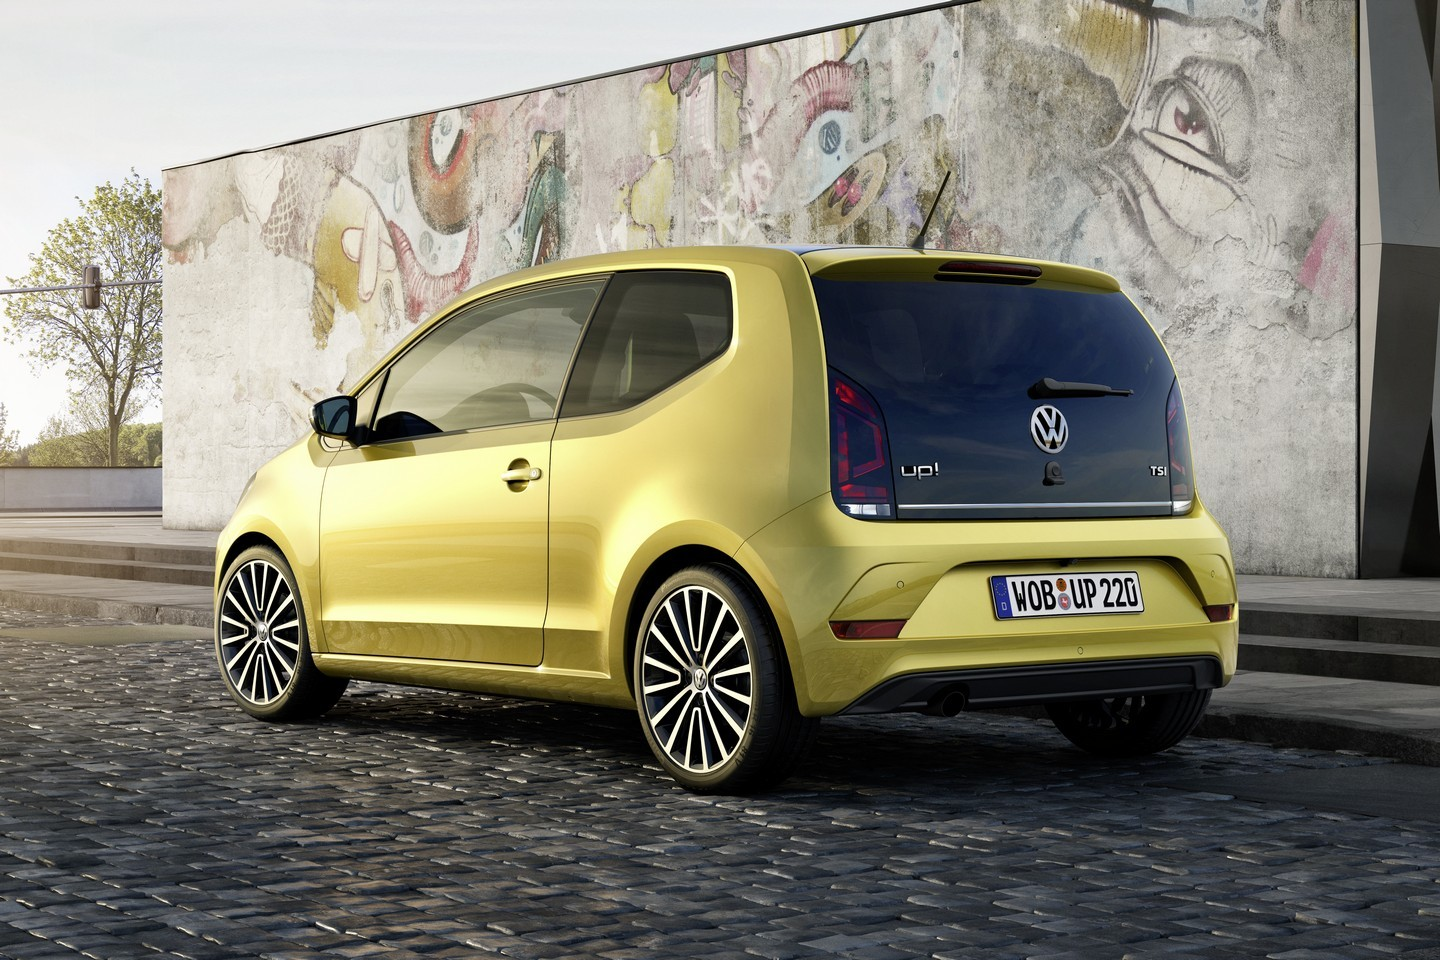 volkswagen german gti configurator goes facelift turbo autoevolution numbers